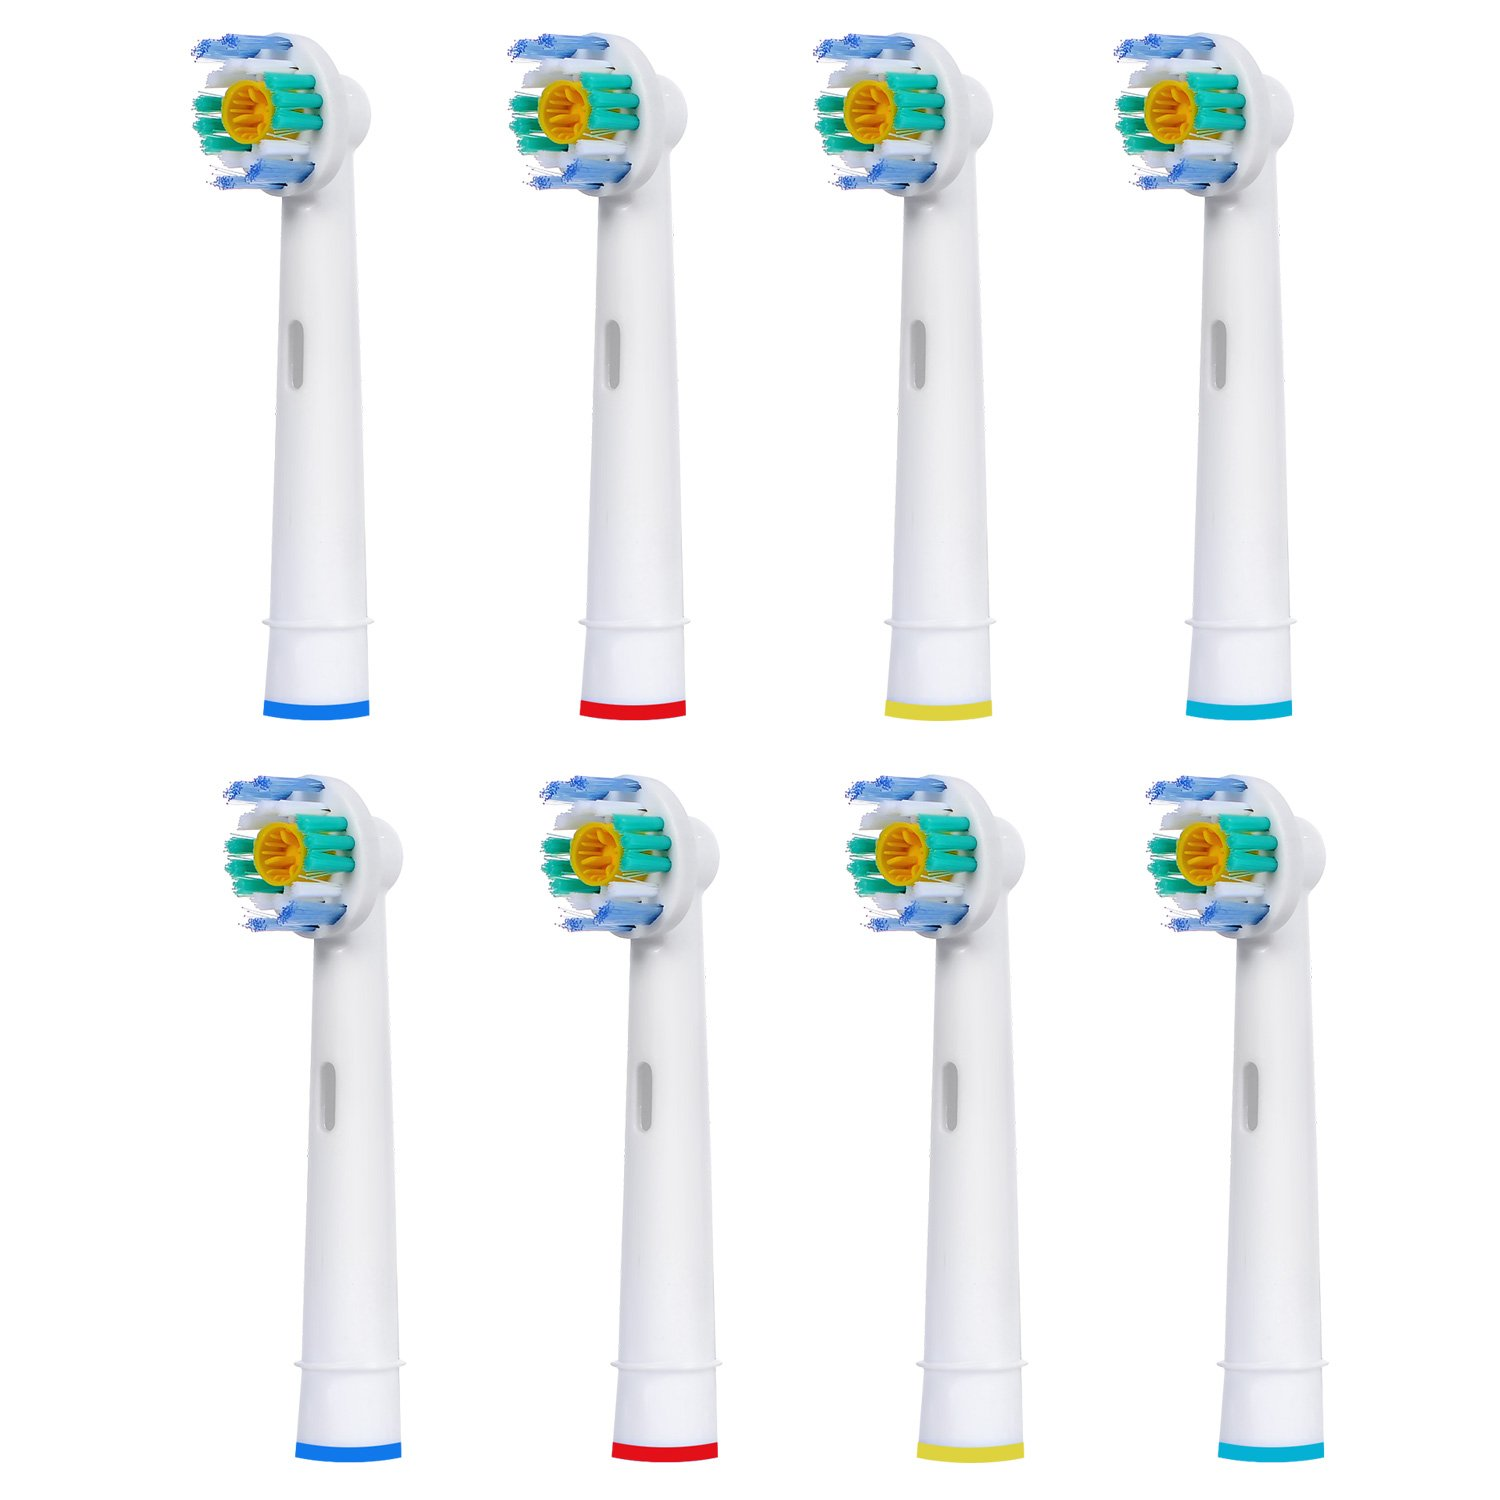 8 pcs (2x4) E-Cron® Toothbrush heads, Replacement for Oral B 3D White (EB18-4). Fully Compatible With The Following Oral B Electric ToothBrush Models: Vitality Precision Clean, Vitality Floss Action, Vitality Sensitive, Vitality Pro White, Vitality Dual Cl